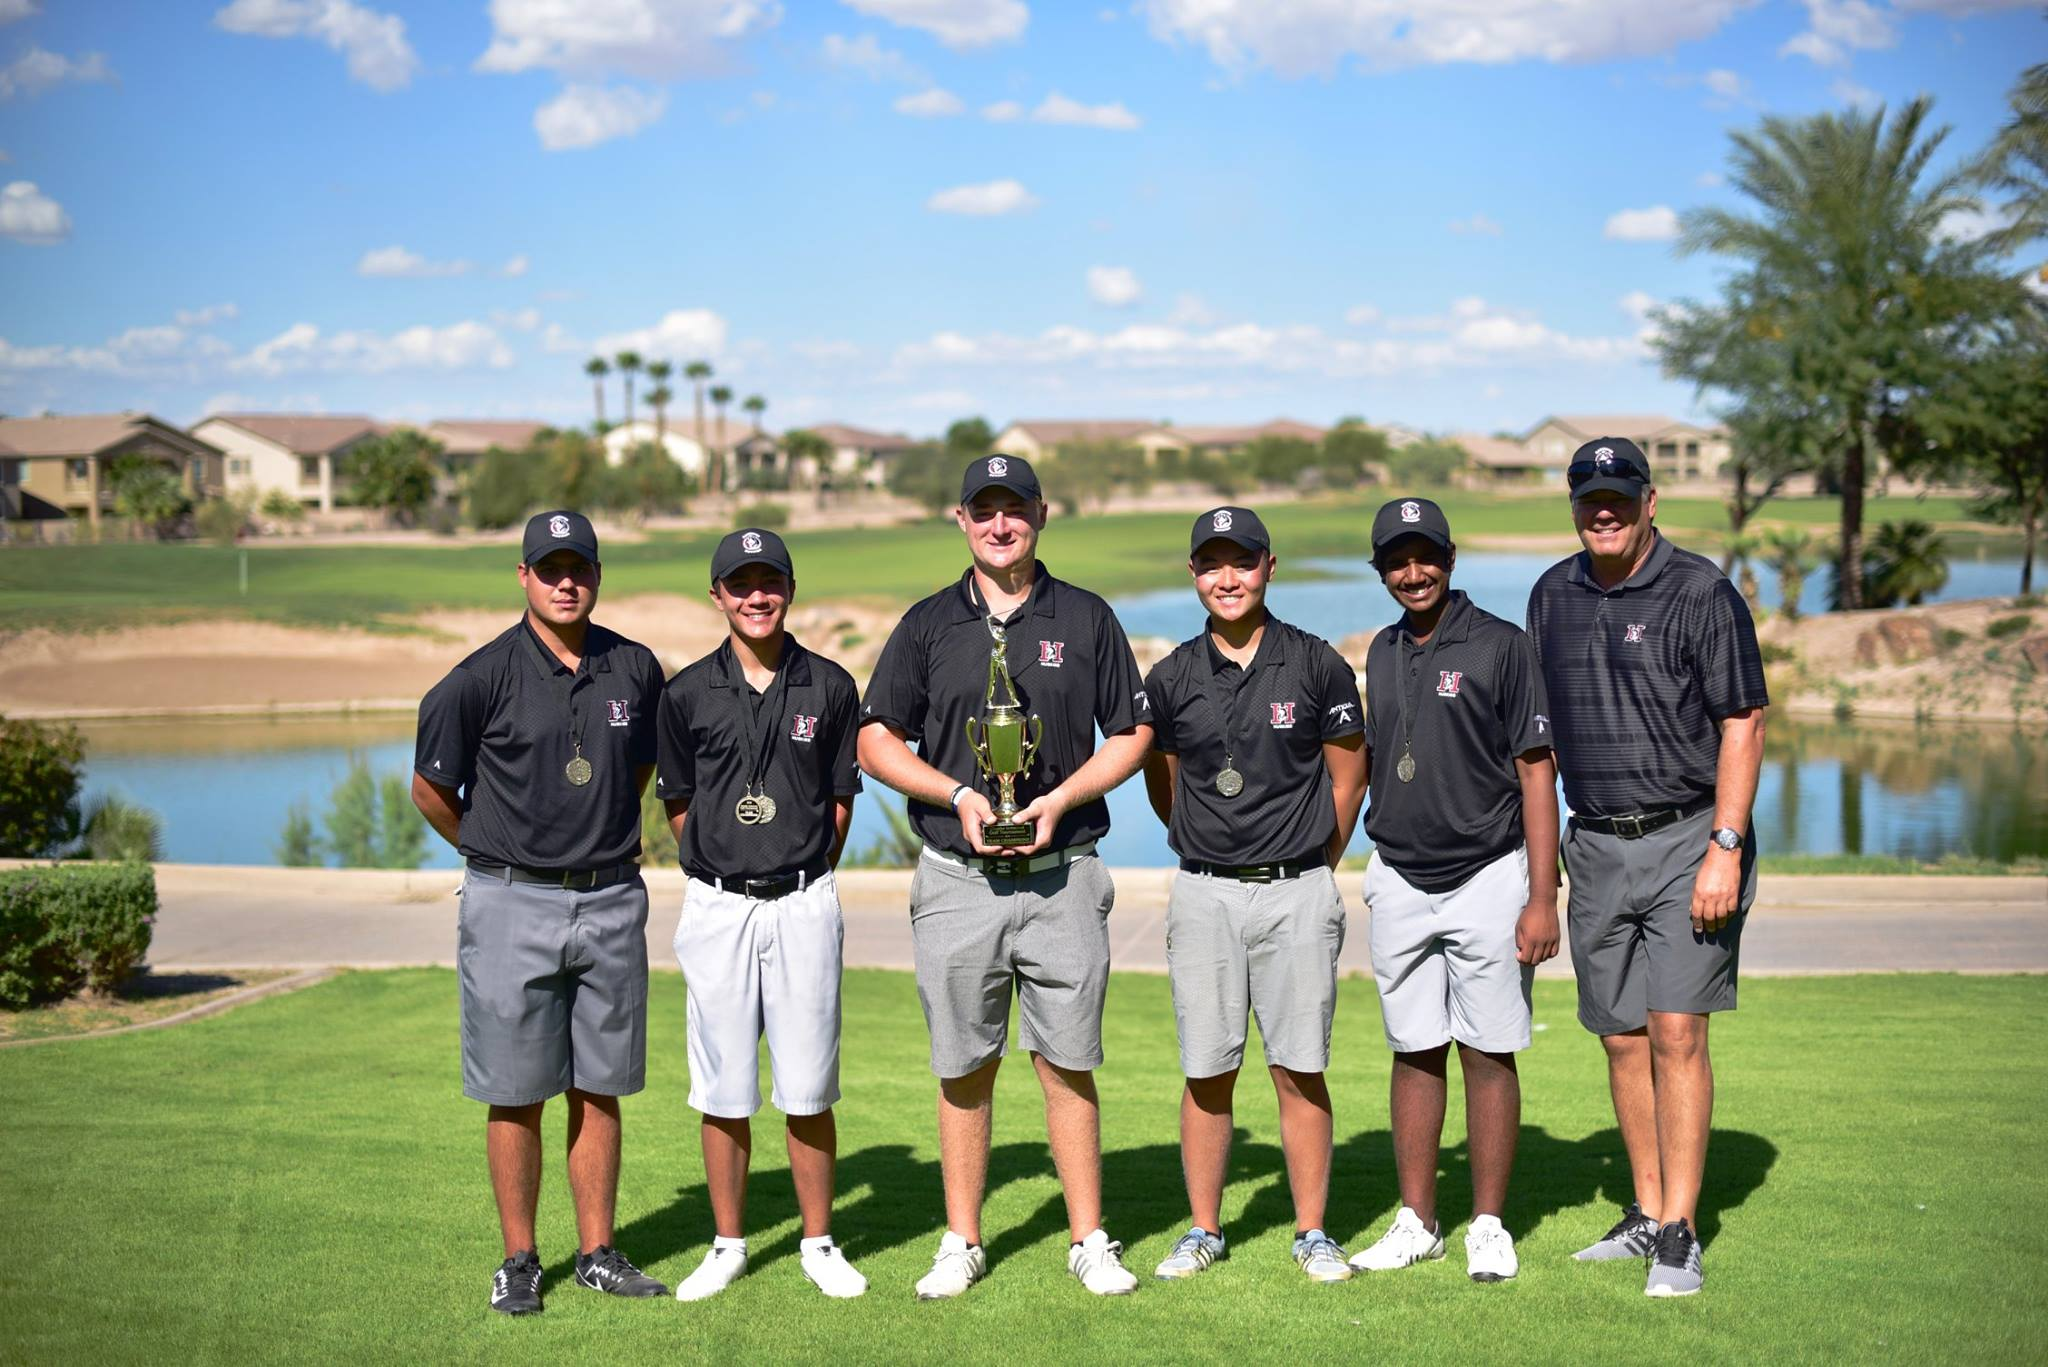 The HHS Boys Golf Team held on to victory by two shots at the 2018 Chandler City Invitational played at The Duke GC in Maricopa this weekend. It was the team's 8th victory in the event in the last ten years! (Left to right: Alejandro de Zavala, Johnny Walker, Caden Rice, Alexander Yu, Mahanth Chirravuri, & Coach Steve Kanner)  Team Results  1. Hamilton +4  2. Perry +6  3. Corona Del Sol +14  4. Desert Vista +49  5. Basha +55  6. Mountain Pointe +95  7. Chandler +145  8. Campo Verde +169